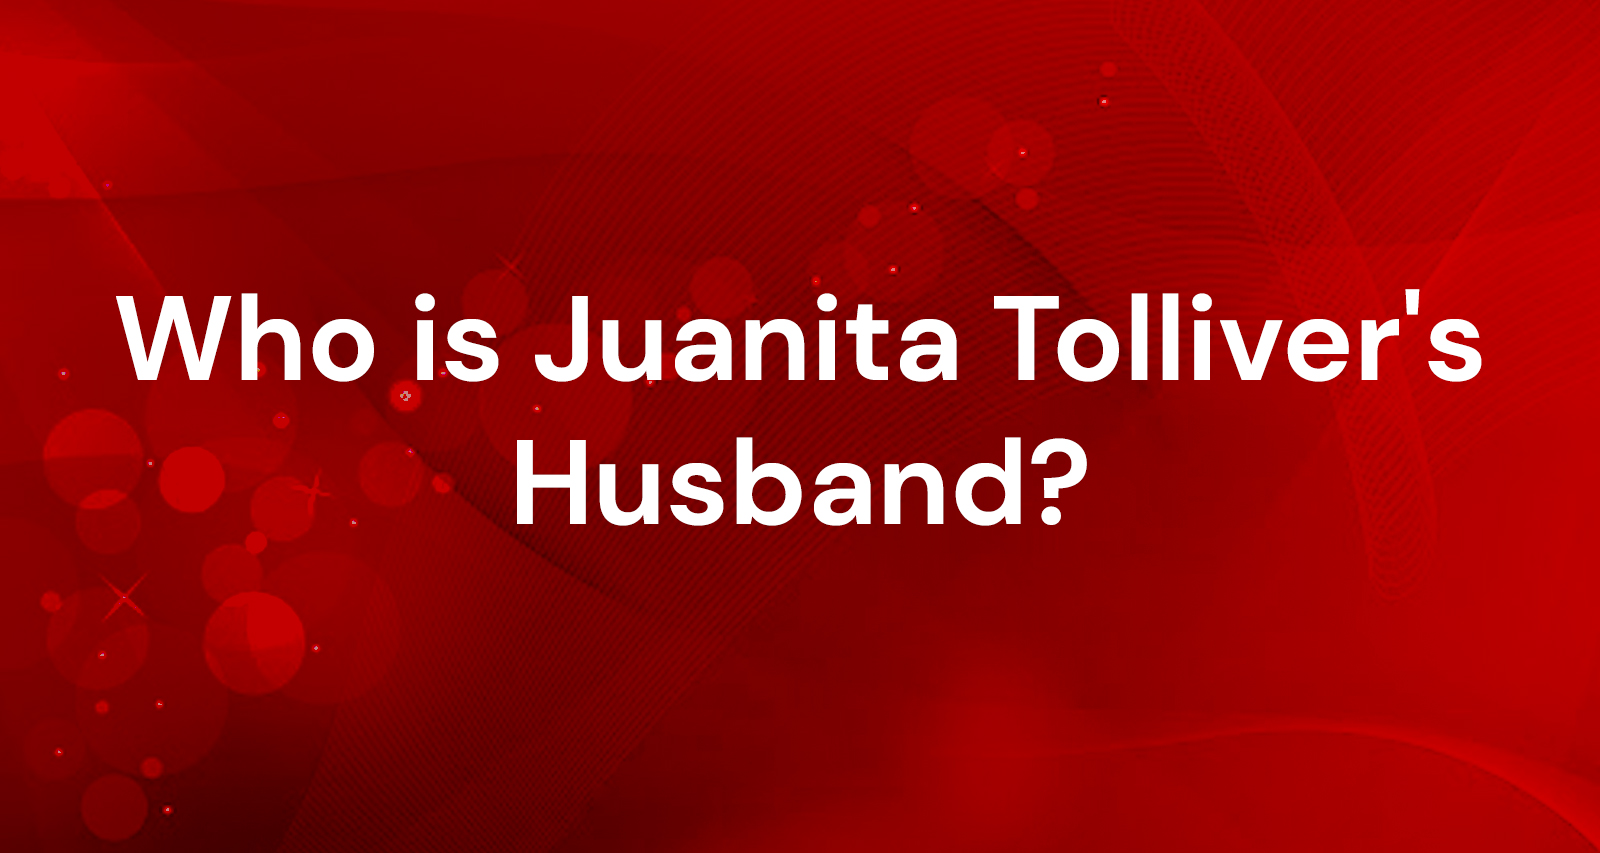 juanita tolliver husband chris leist